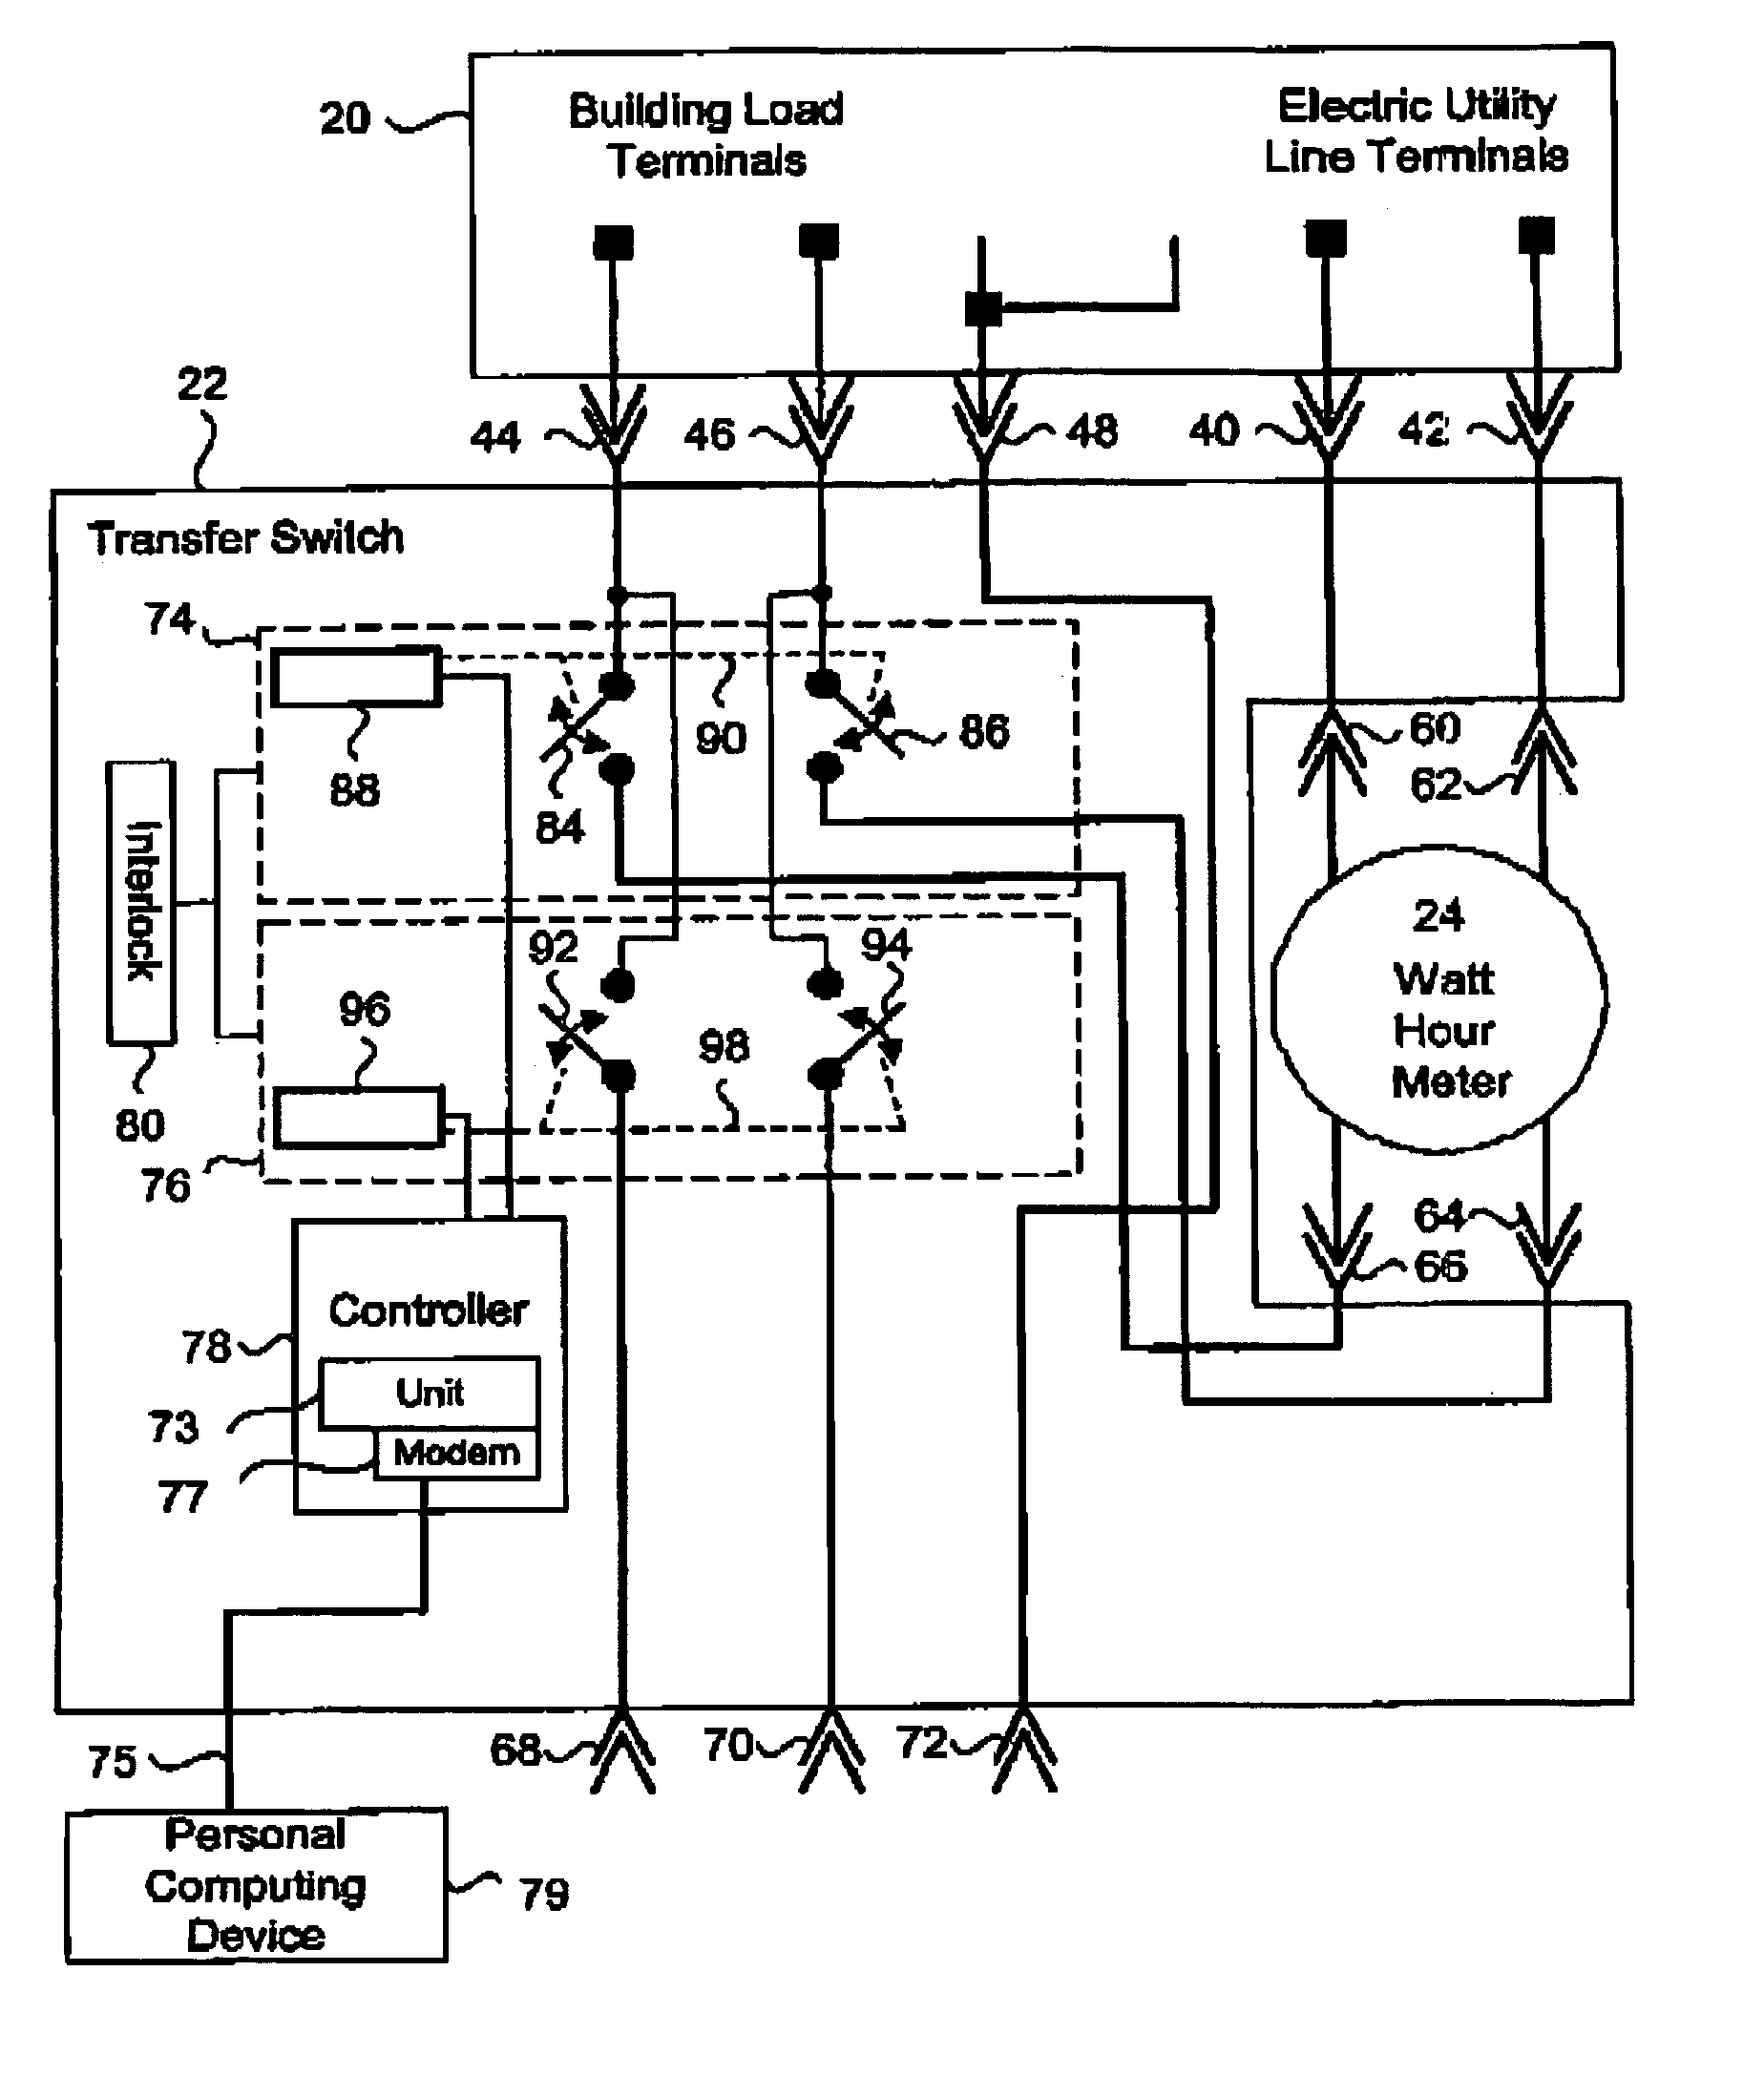 Wiring Diagram For Residential Transfer Switch : Patente us power transfer switch assembly